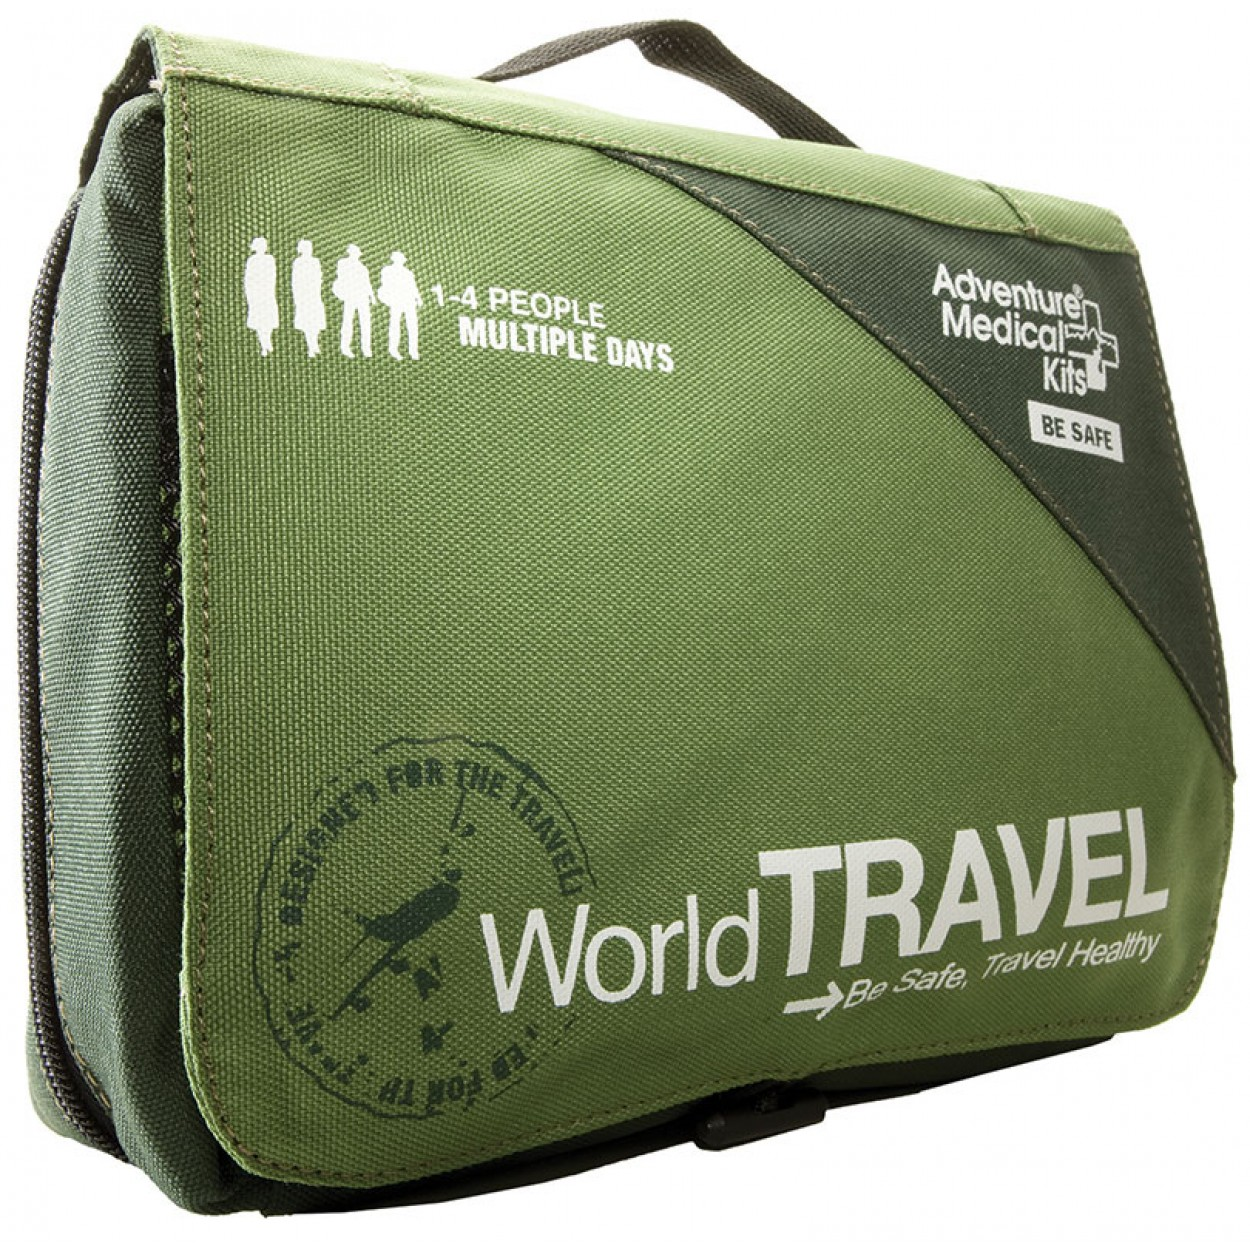 World Travel First Aid Kit by Adventure Medical Kits